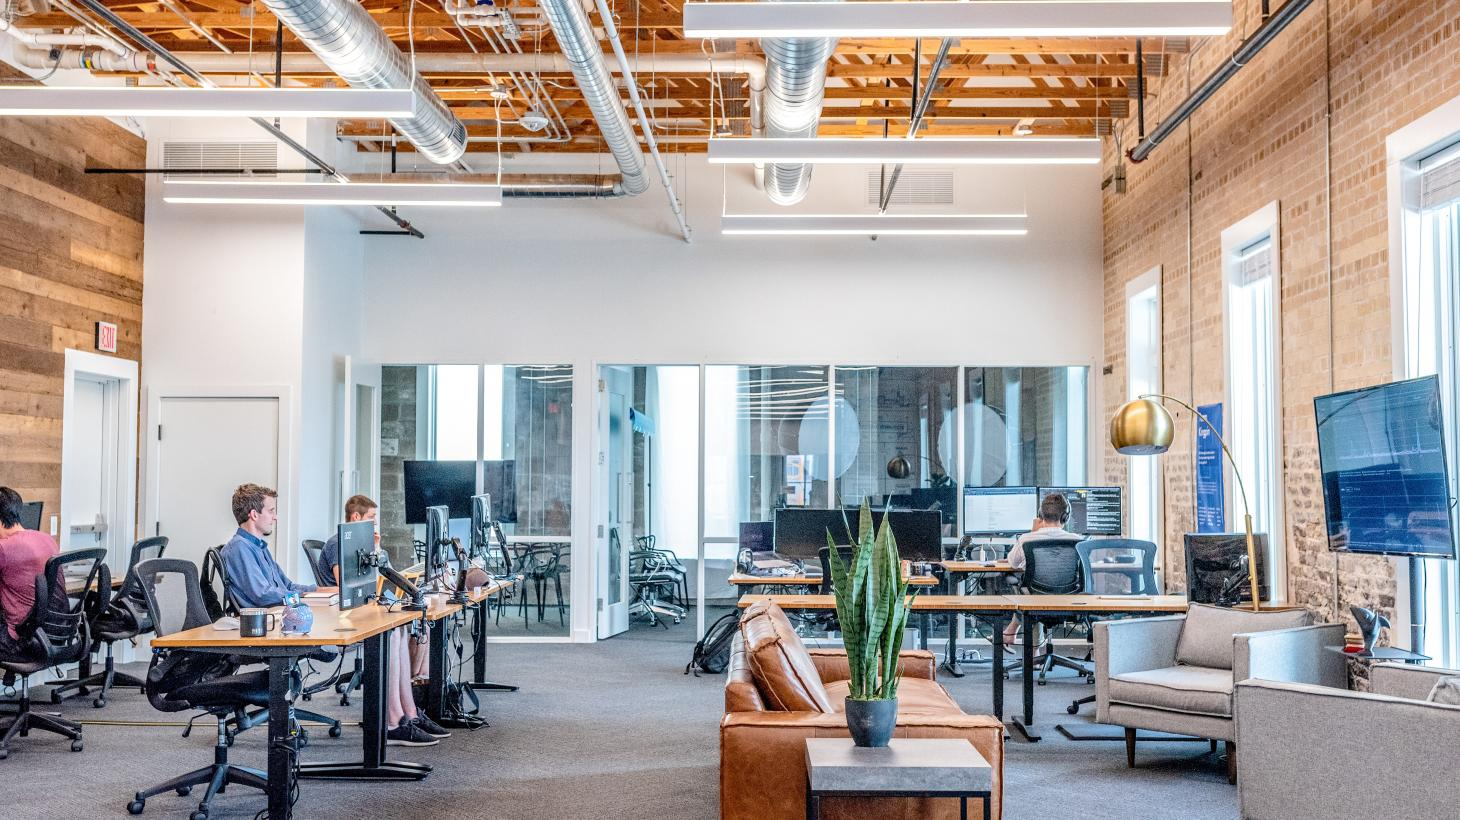 An open-plan office with staff working at their desks